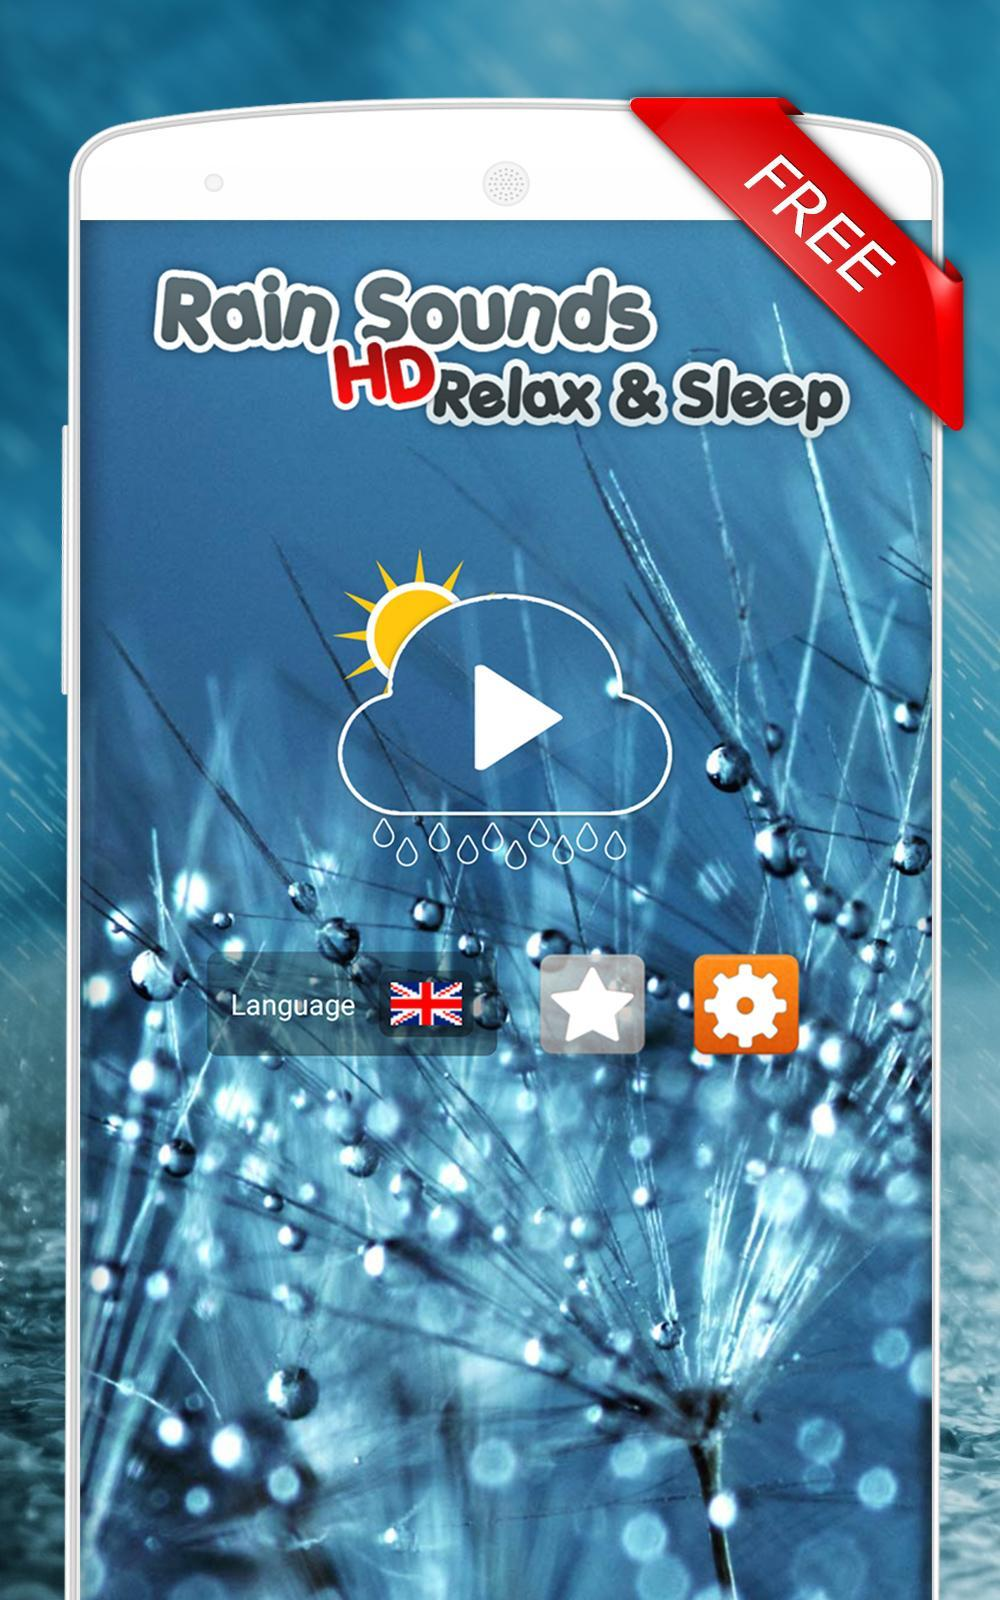 Rain Sounds for Android - APK Download